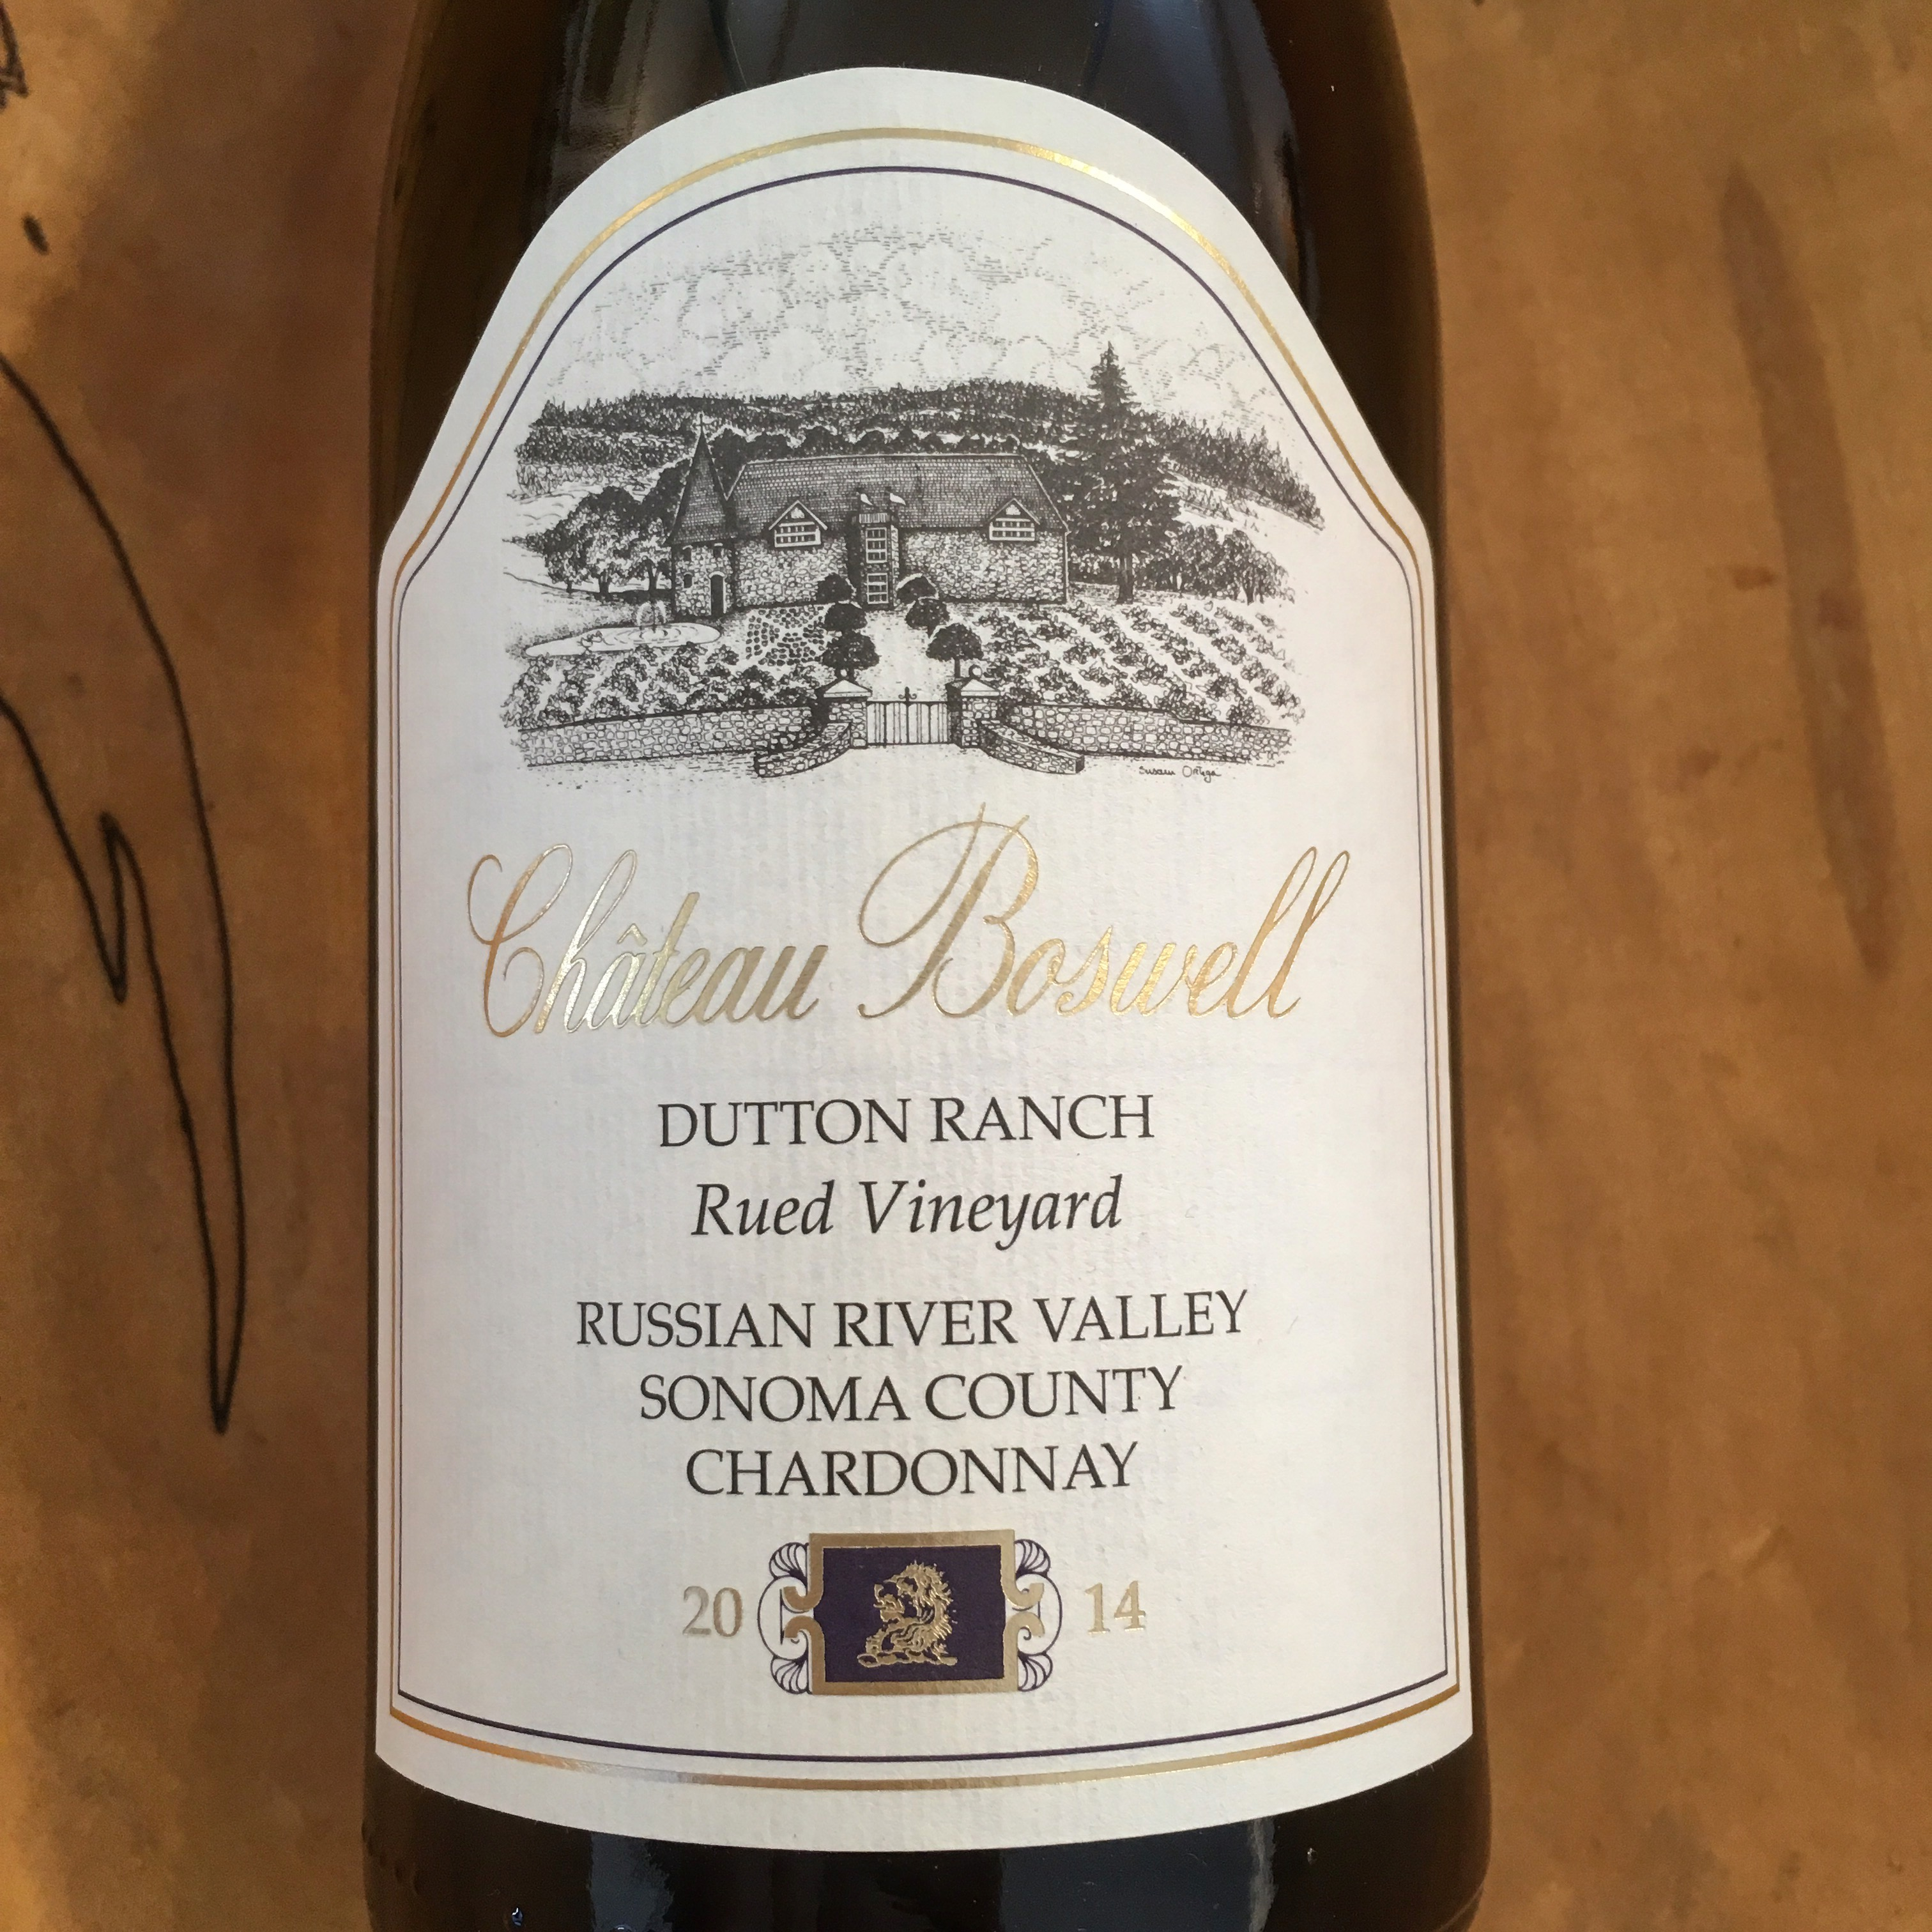 Chateau Boswell Rued Vineyard Chardonnay 2014 Russian River Valley - K. Laz Wine Collection